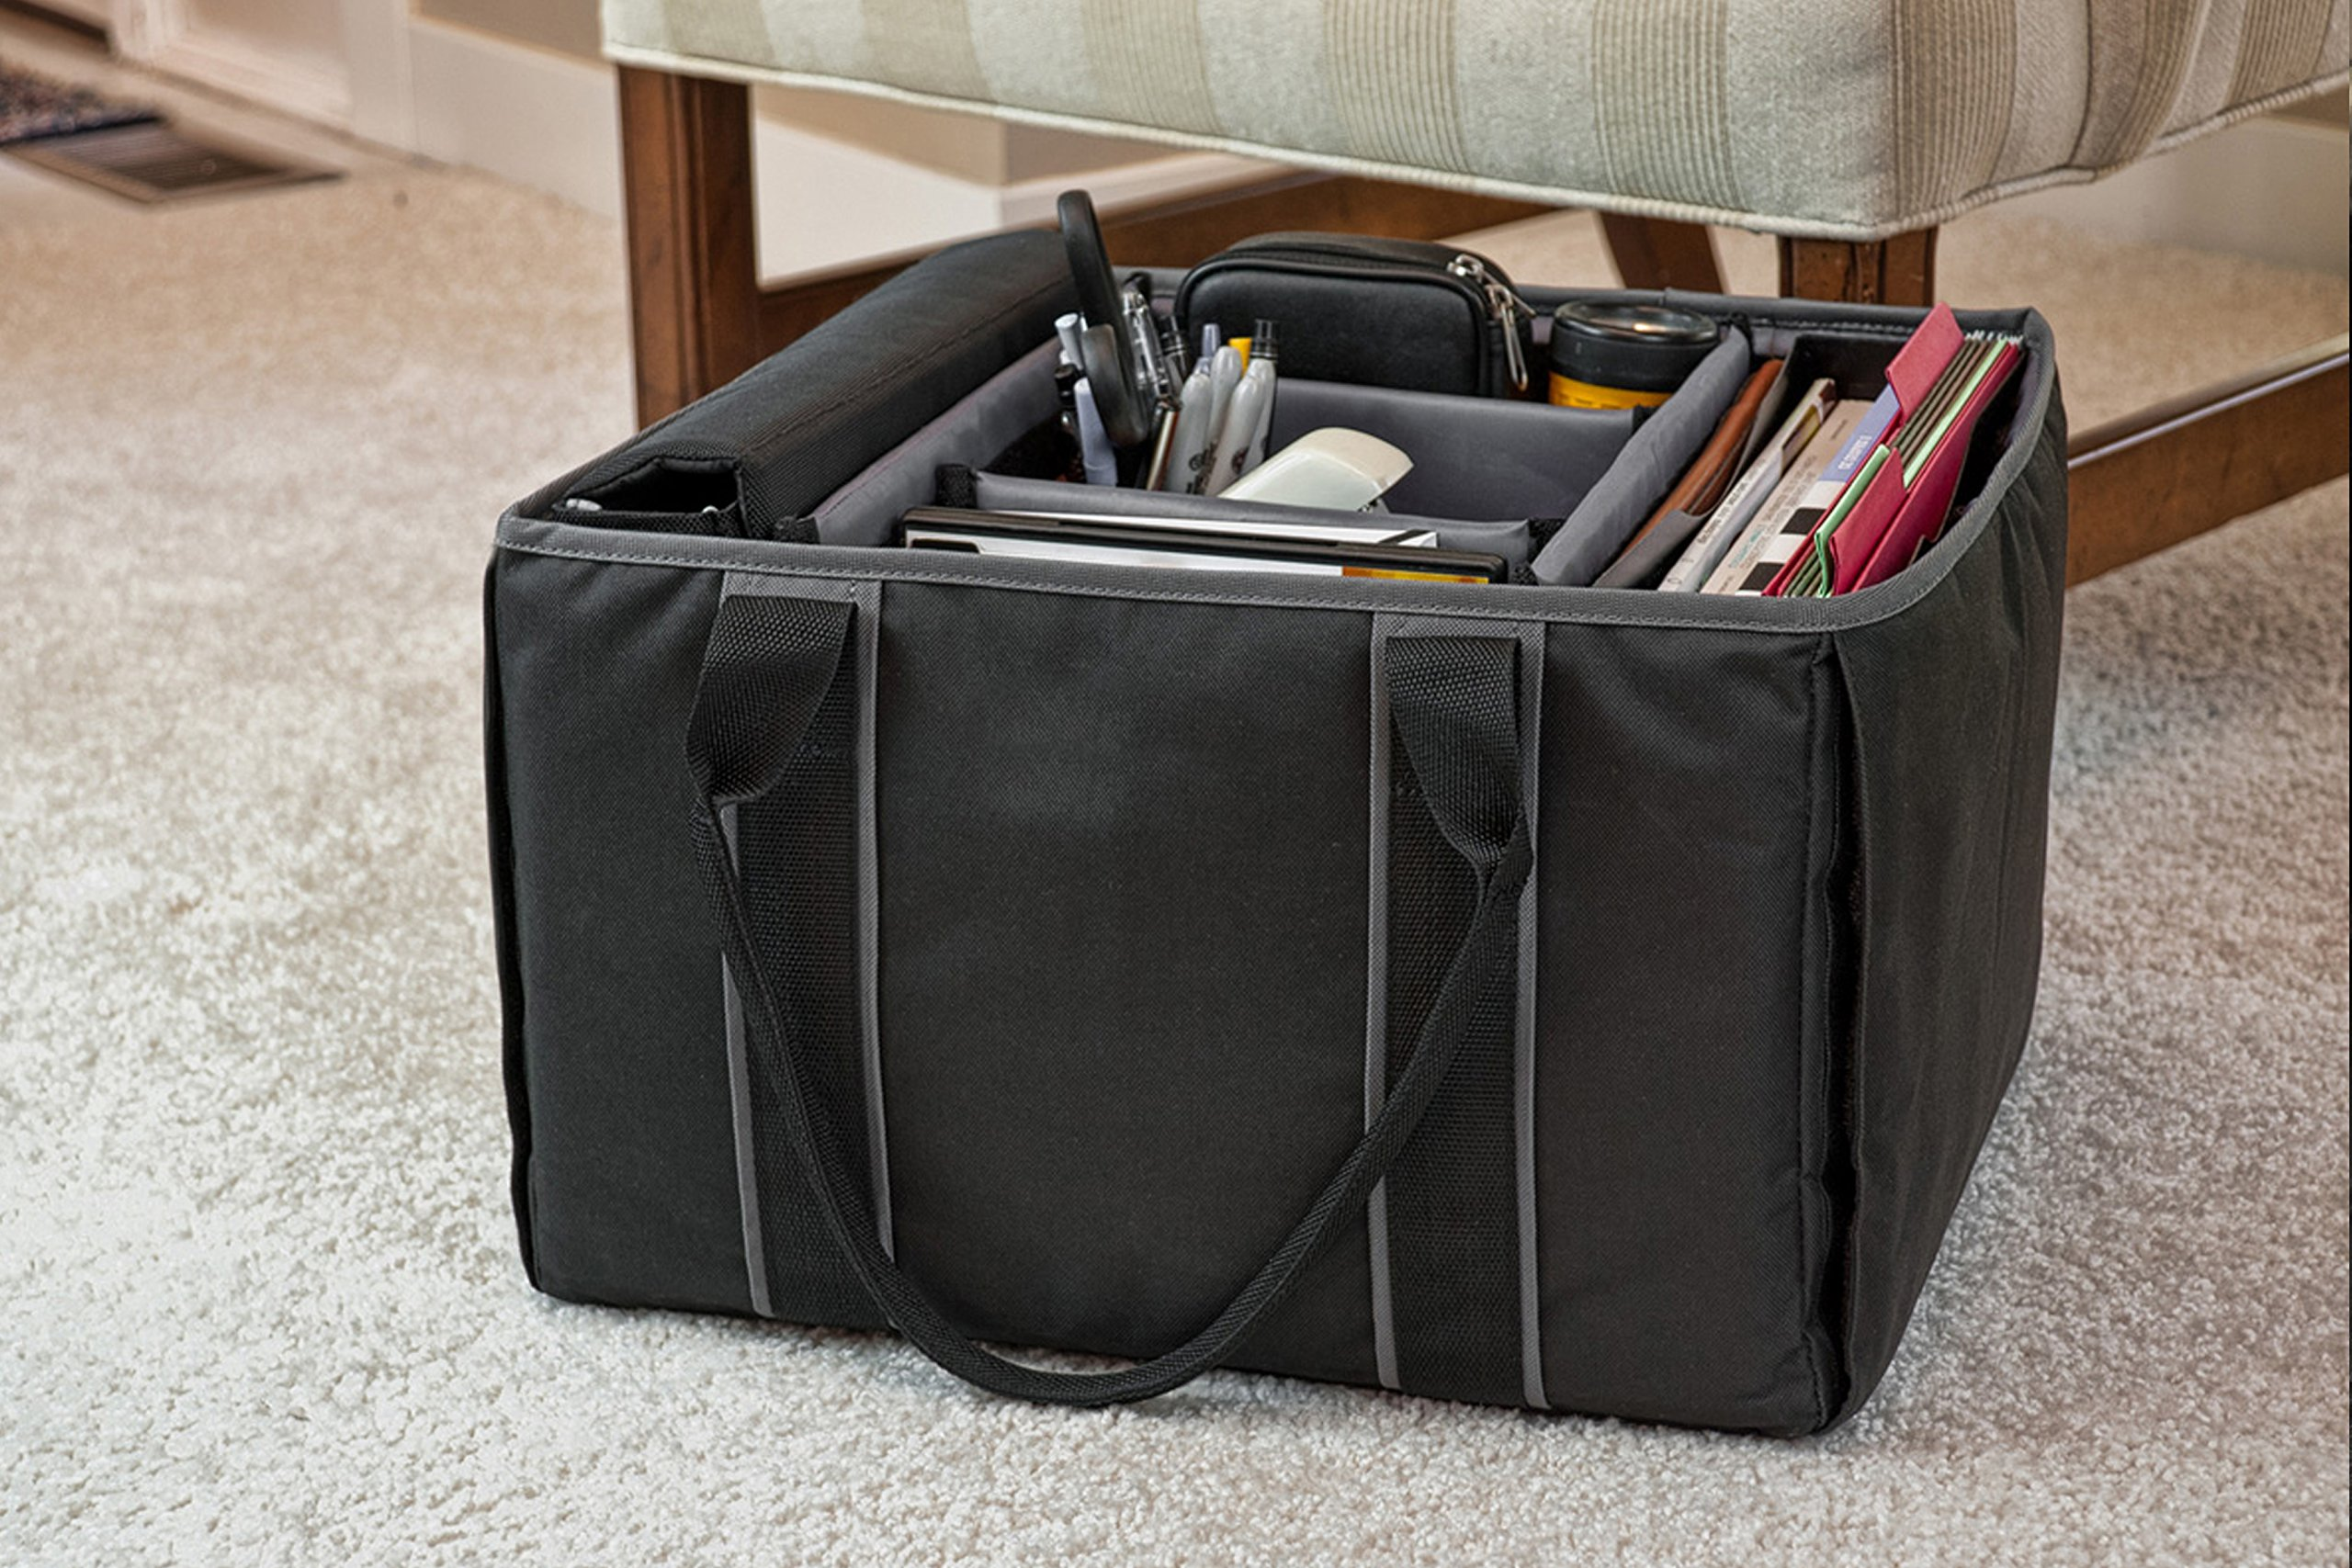 AutoExec AETote-09 Black/Grey File Tote with One Cooler and One Tablet Case by AutoExec (Image #15)